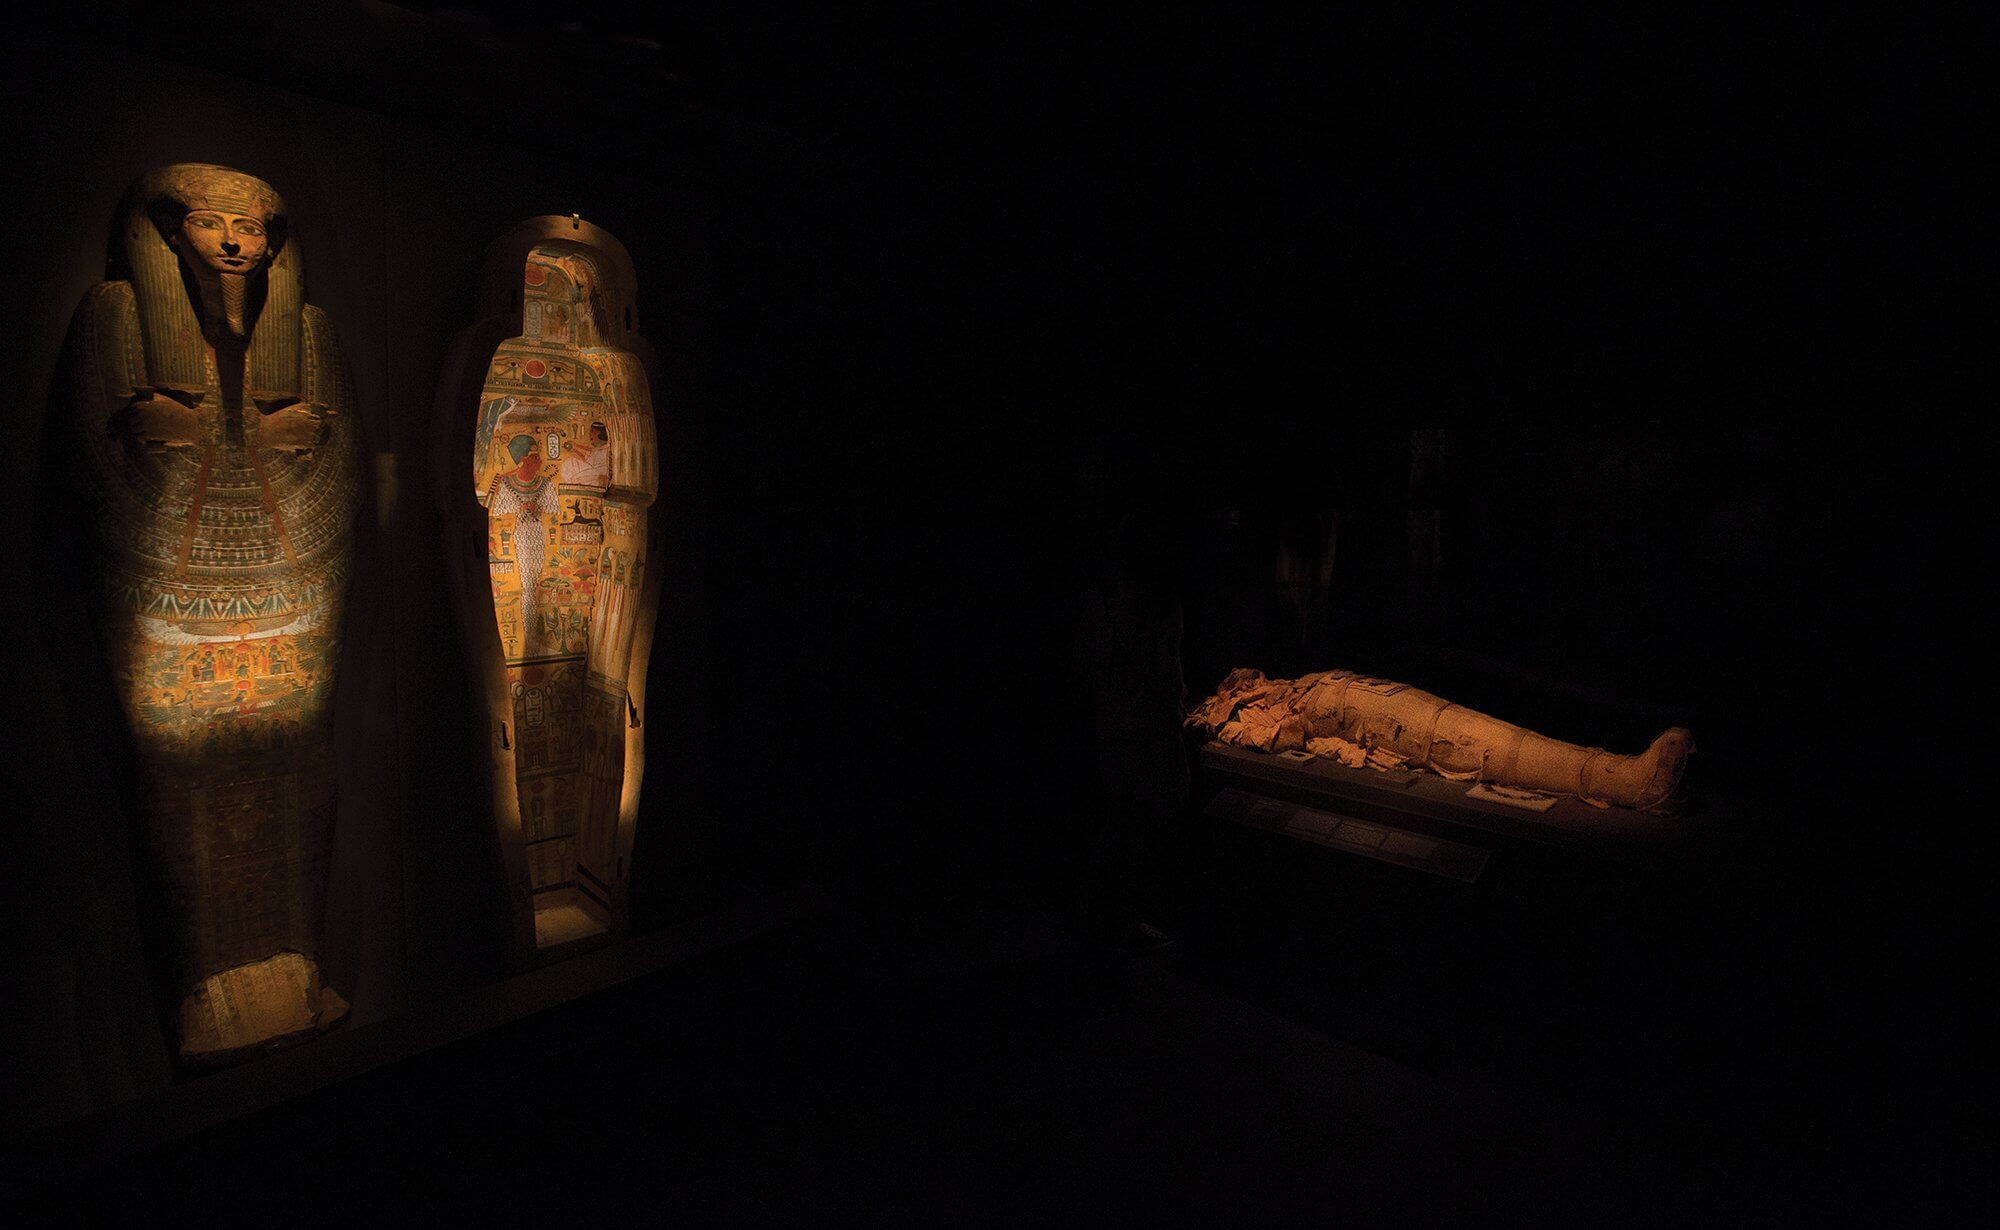 Sarcophagi and a mummy on display at the Houston Museum of Natural Science.